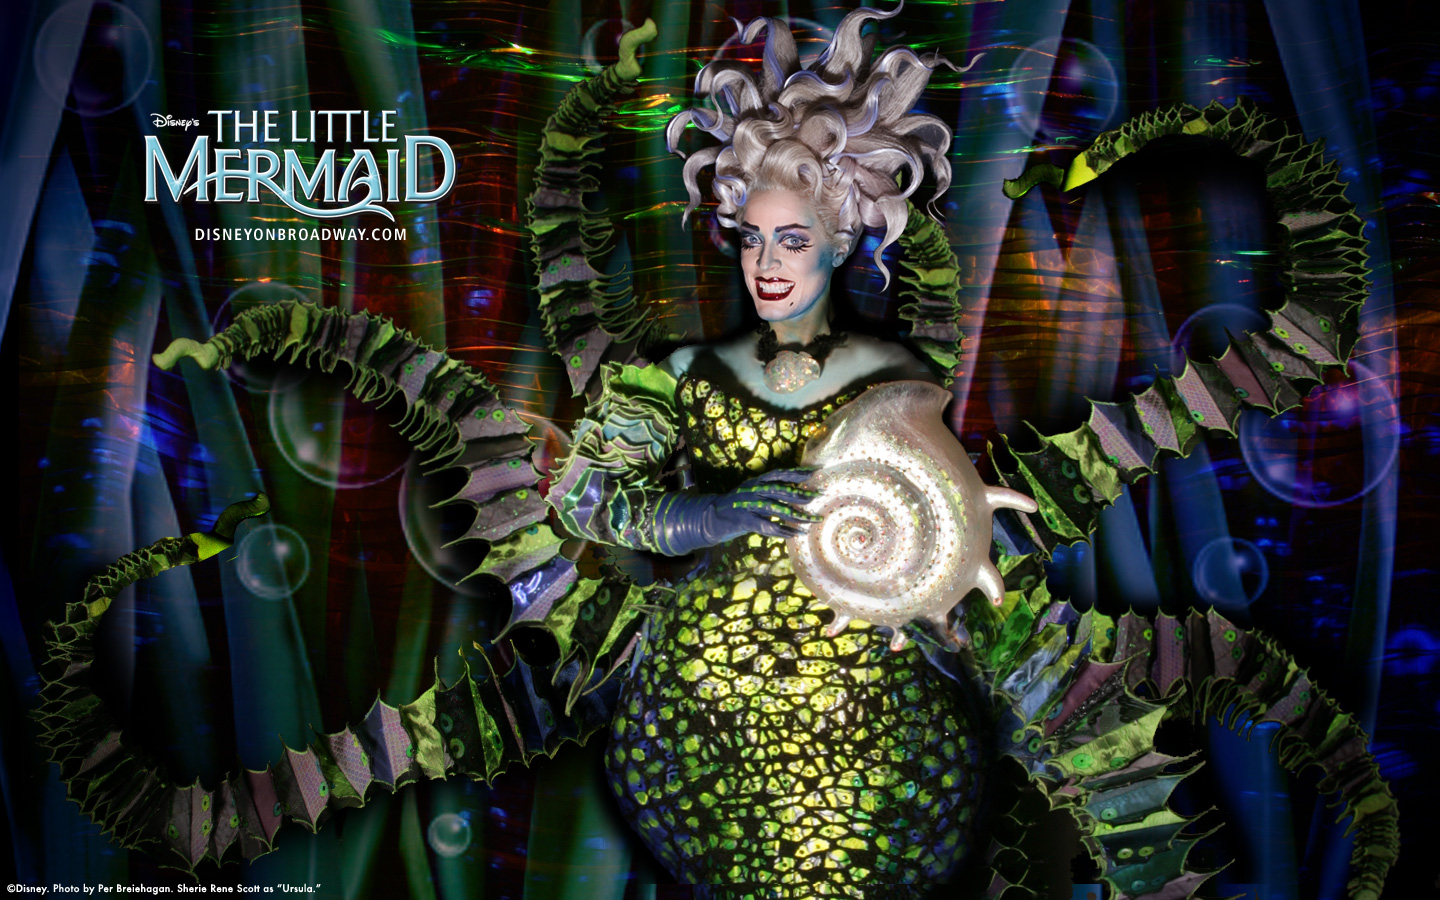 Projects The Little Mermaid